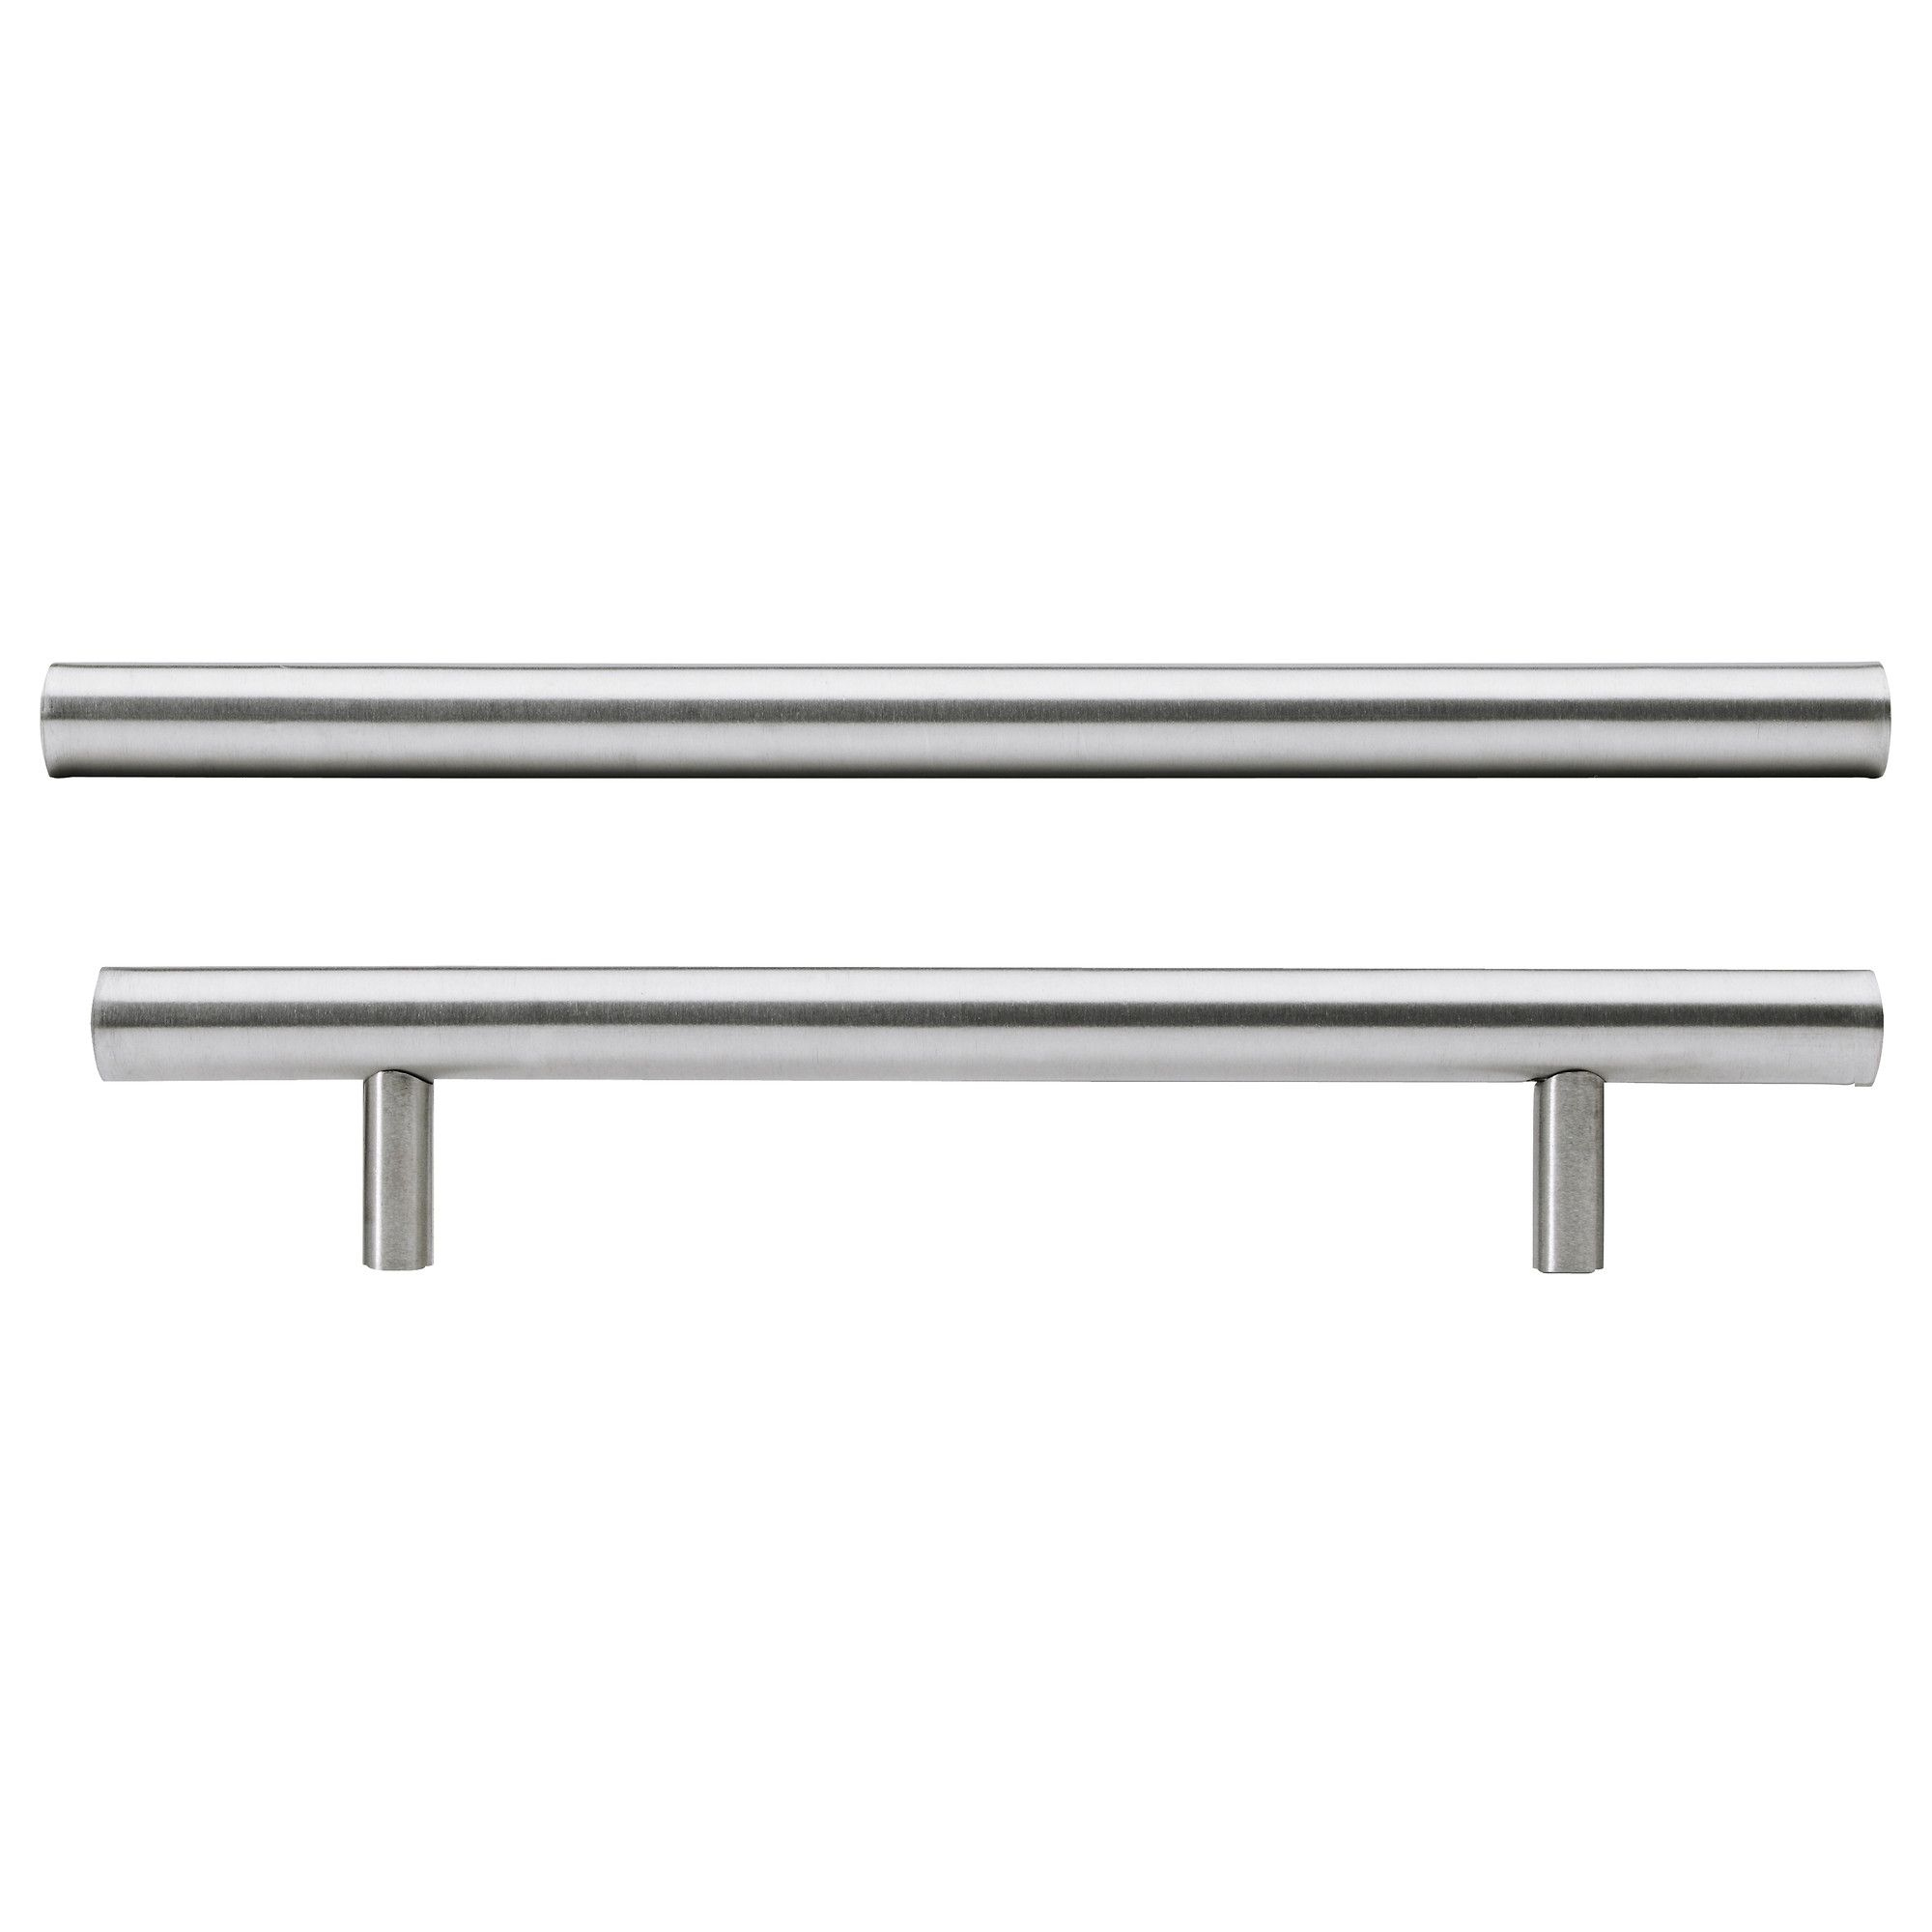 Couvercle Anti Projection Ikea Frais Image Lansa Handle Stainless Steel Pinterest